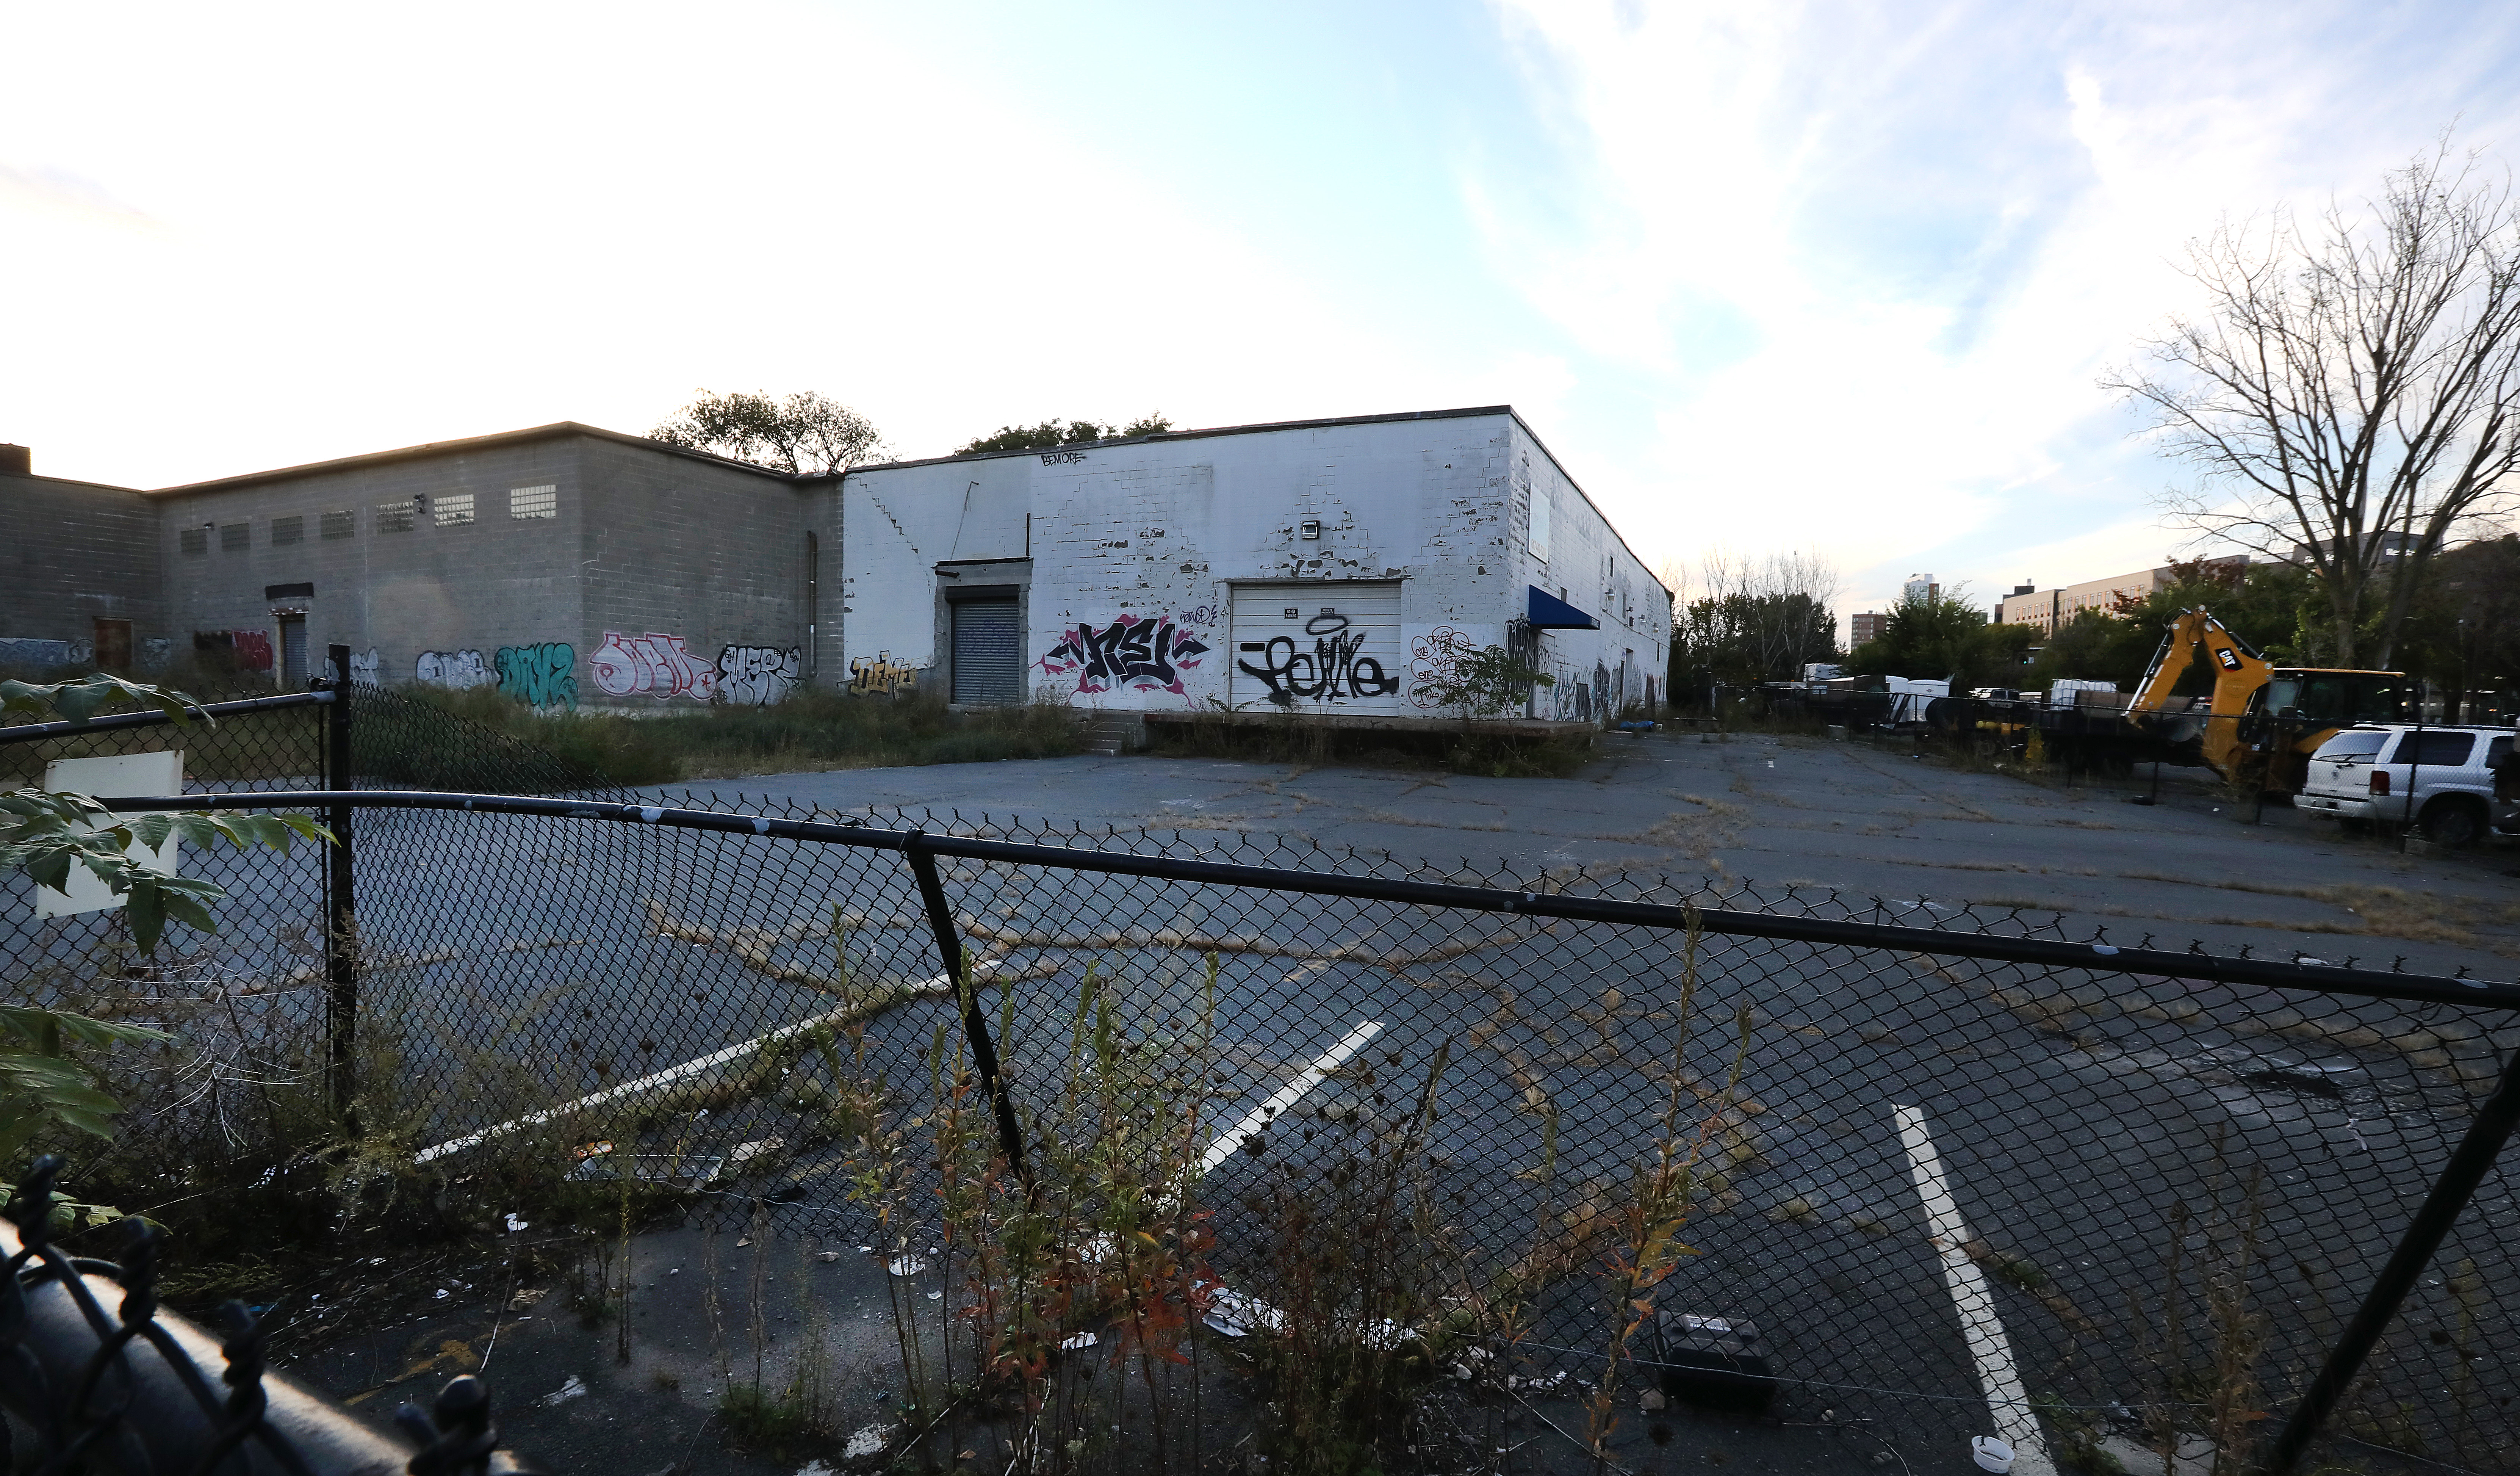 A vacant lot with a fence in front of it and a rundown single-story building at the end of it.